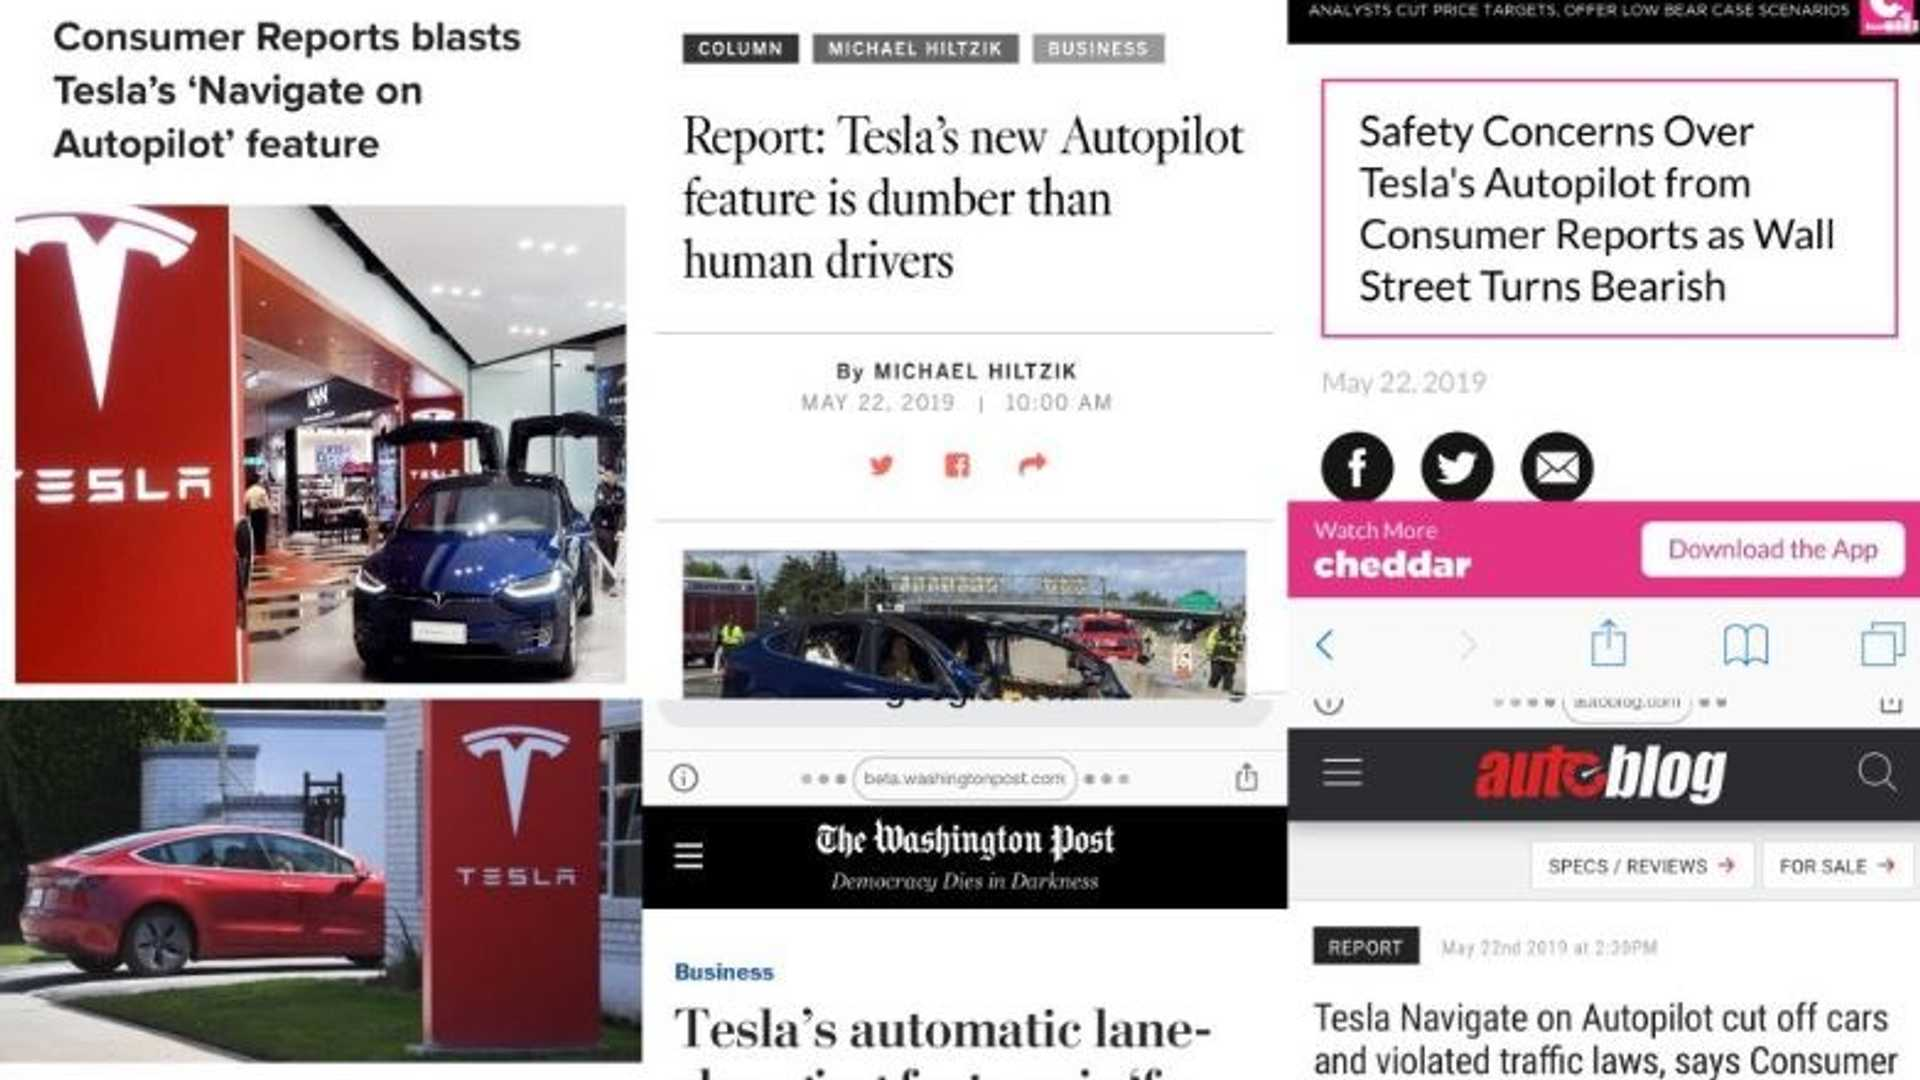 Consumer Reports Not Thrilled By Misleading Navigate On Autopilot Headlines